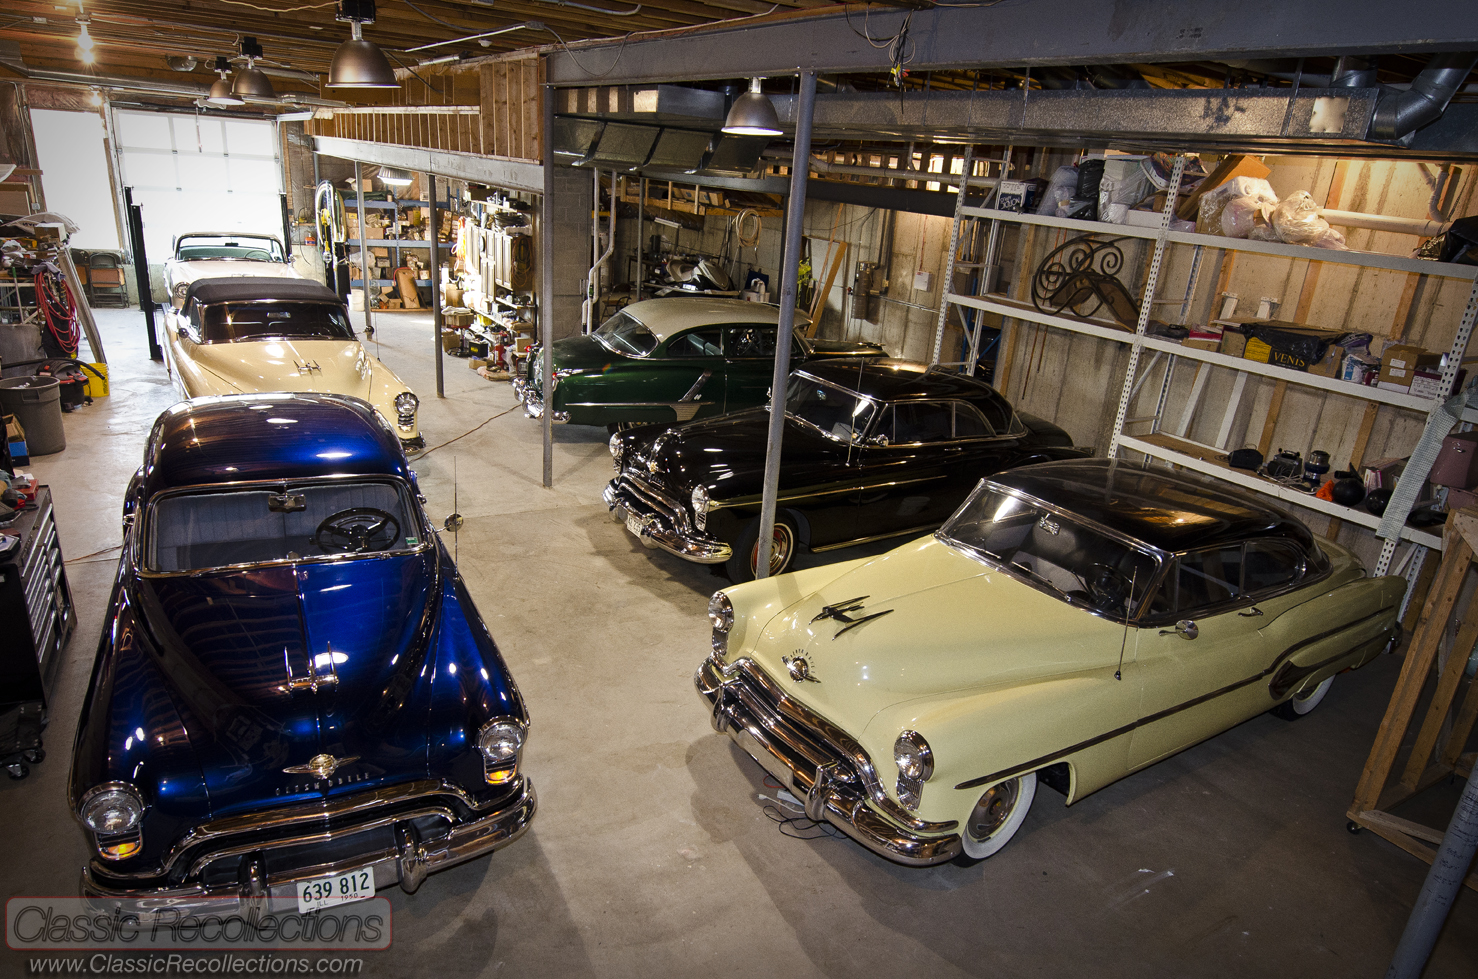 classic oldsmobile cars are stored in a dream garage in a basement